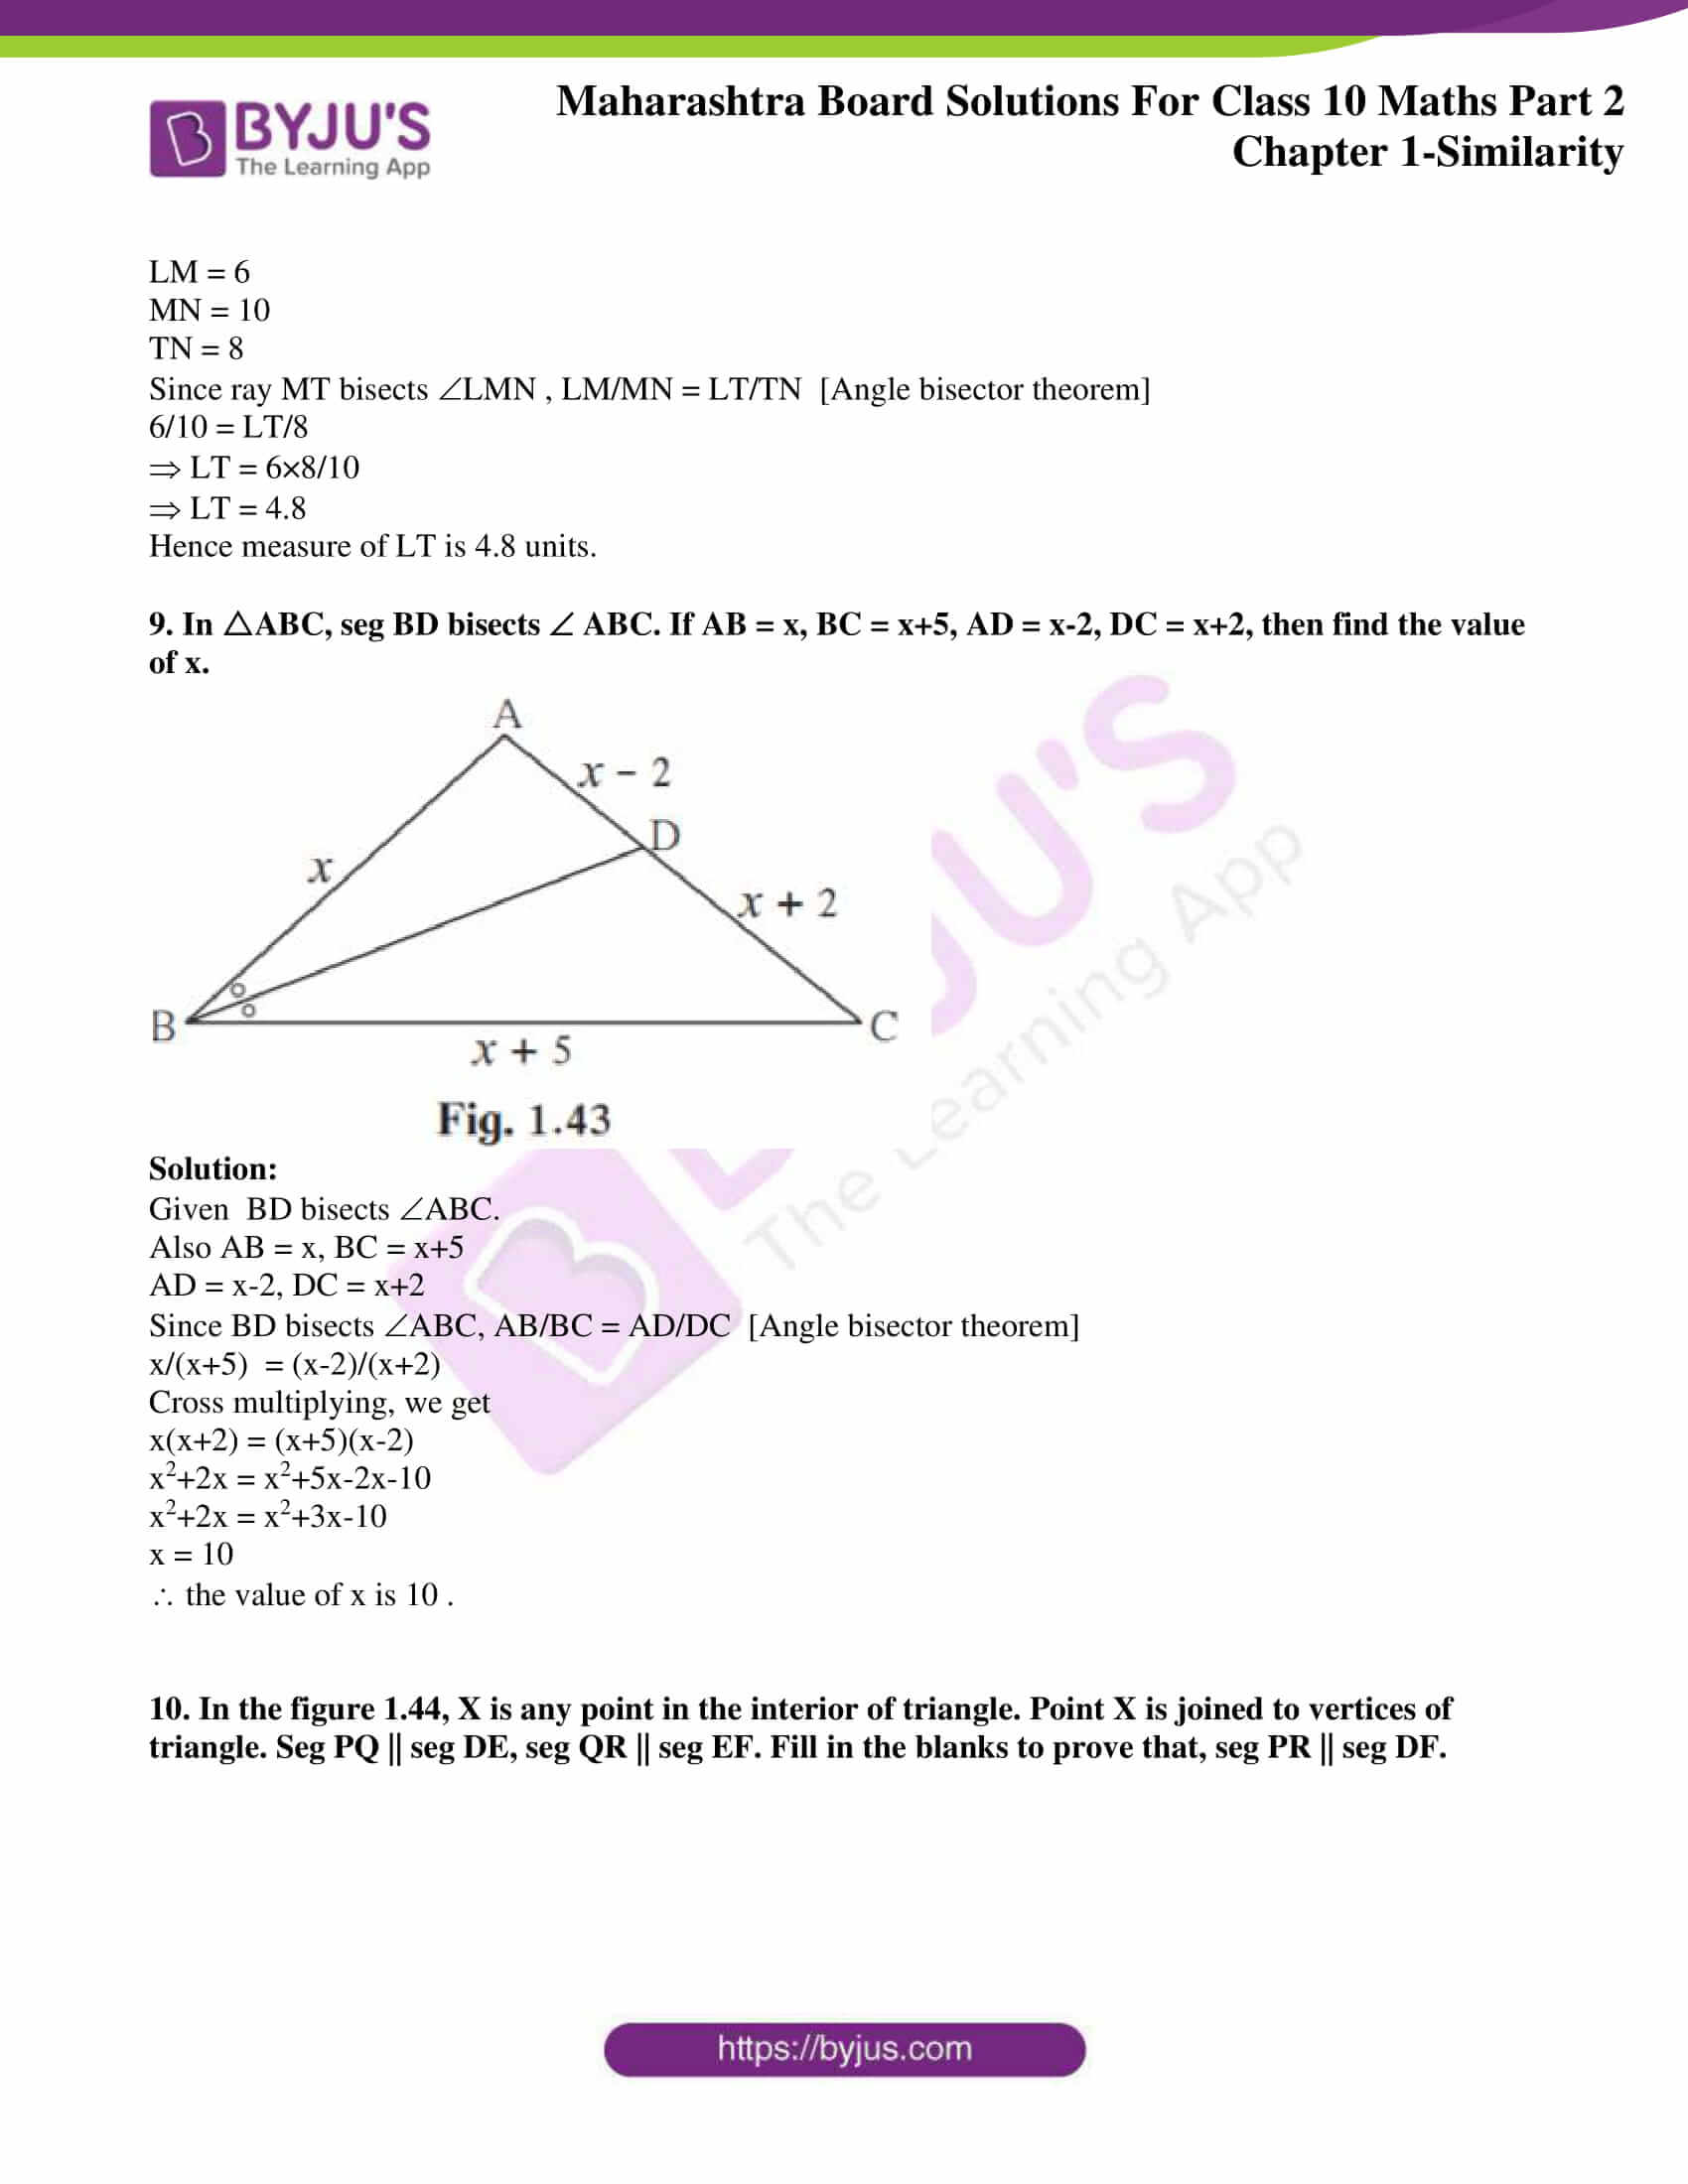 msbshse sol class 10 maths part 2 chapter 1 10